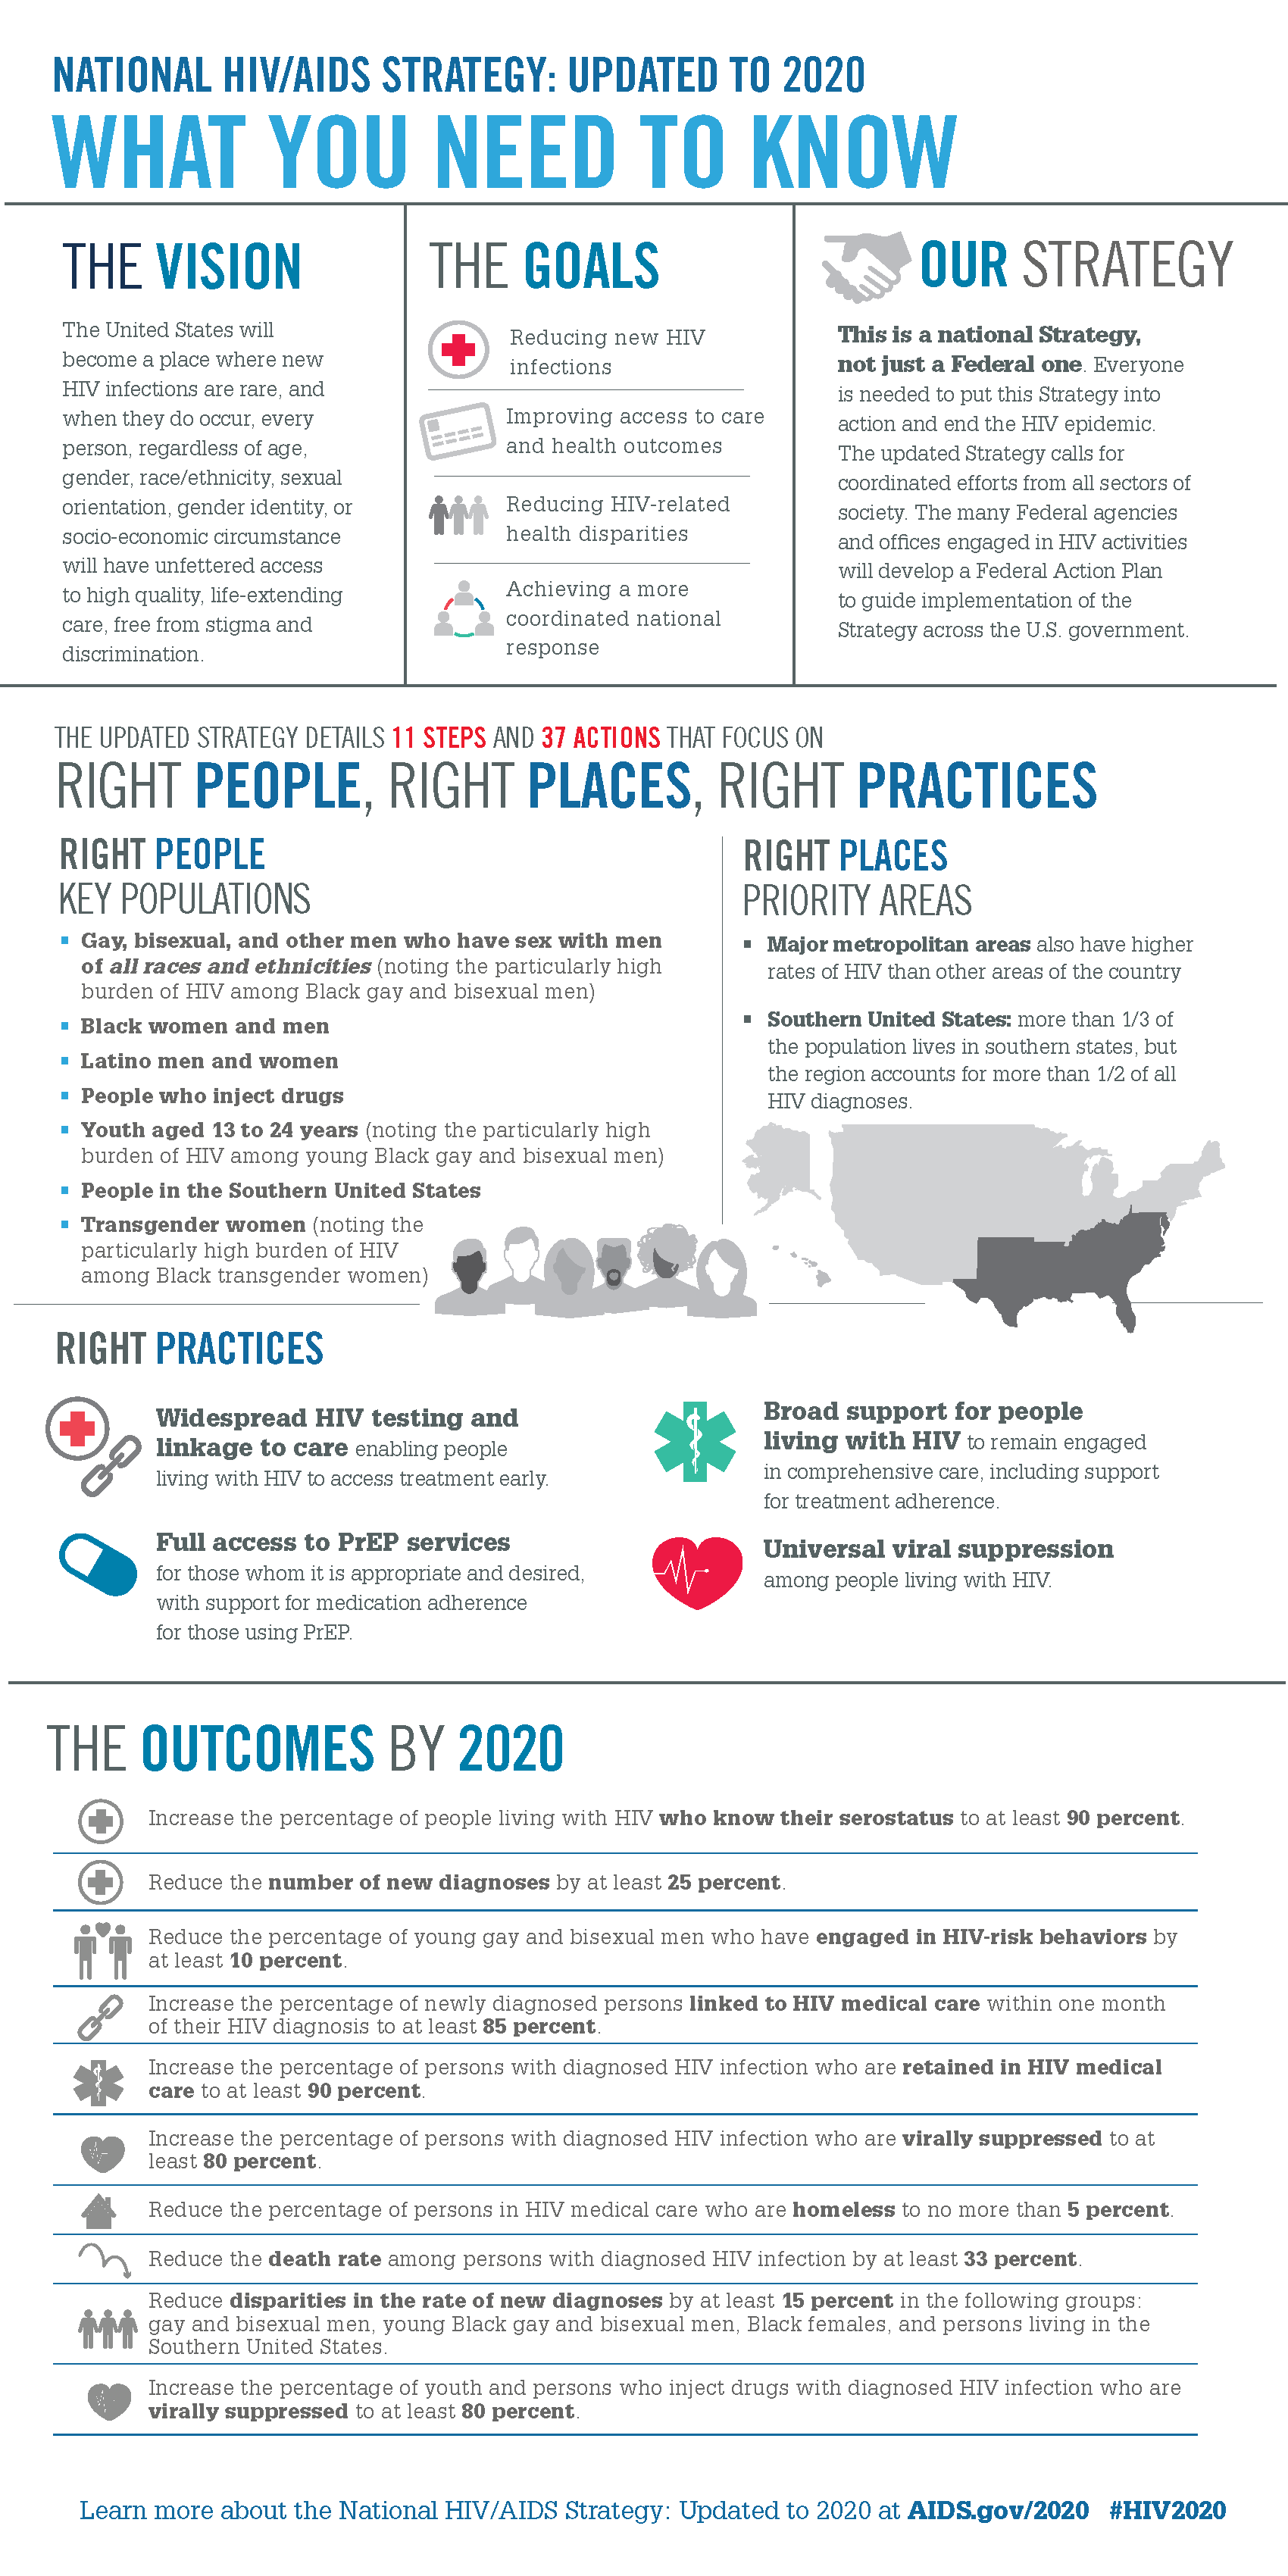 Hiv 2020 plan to impact florida health news florida - Healthy people 2020 is a plan designed to ...